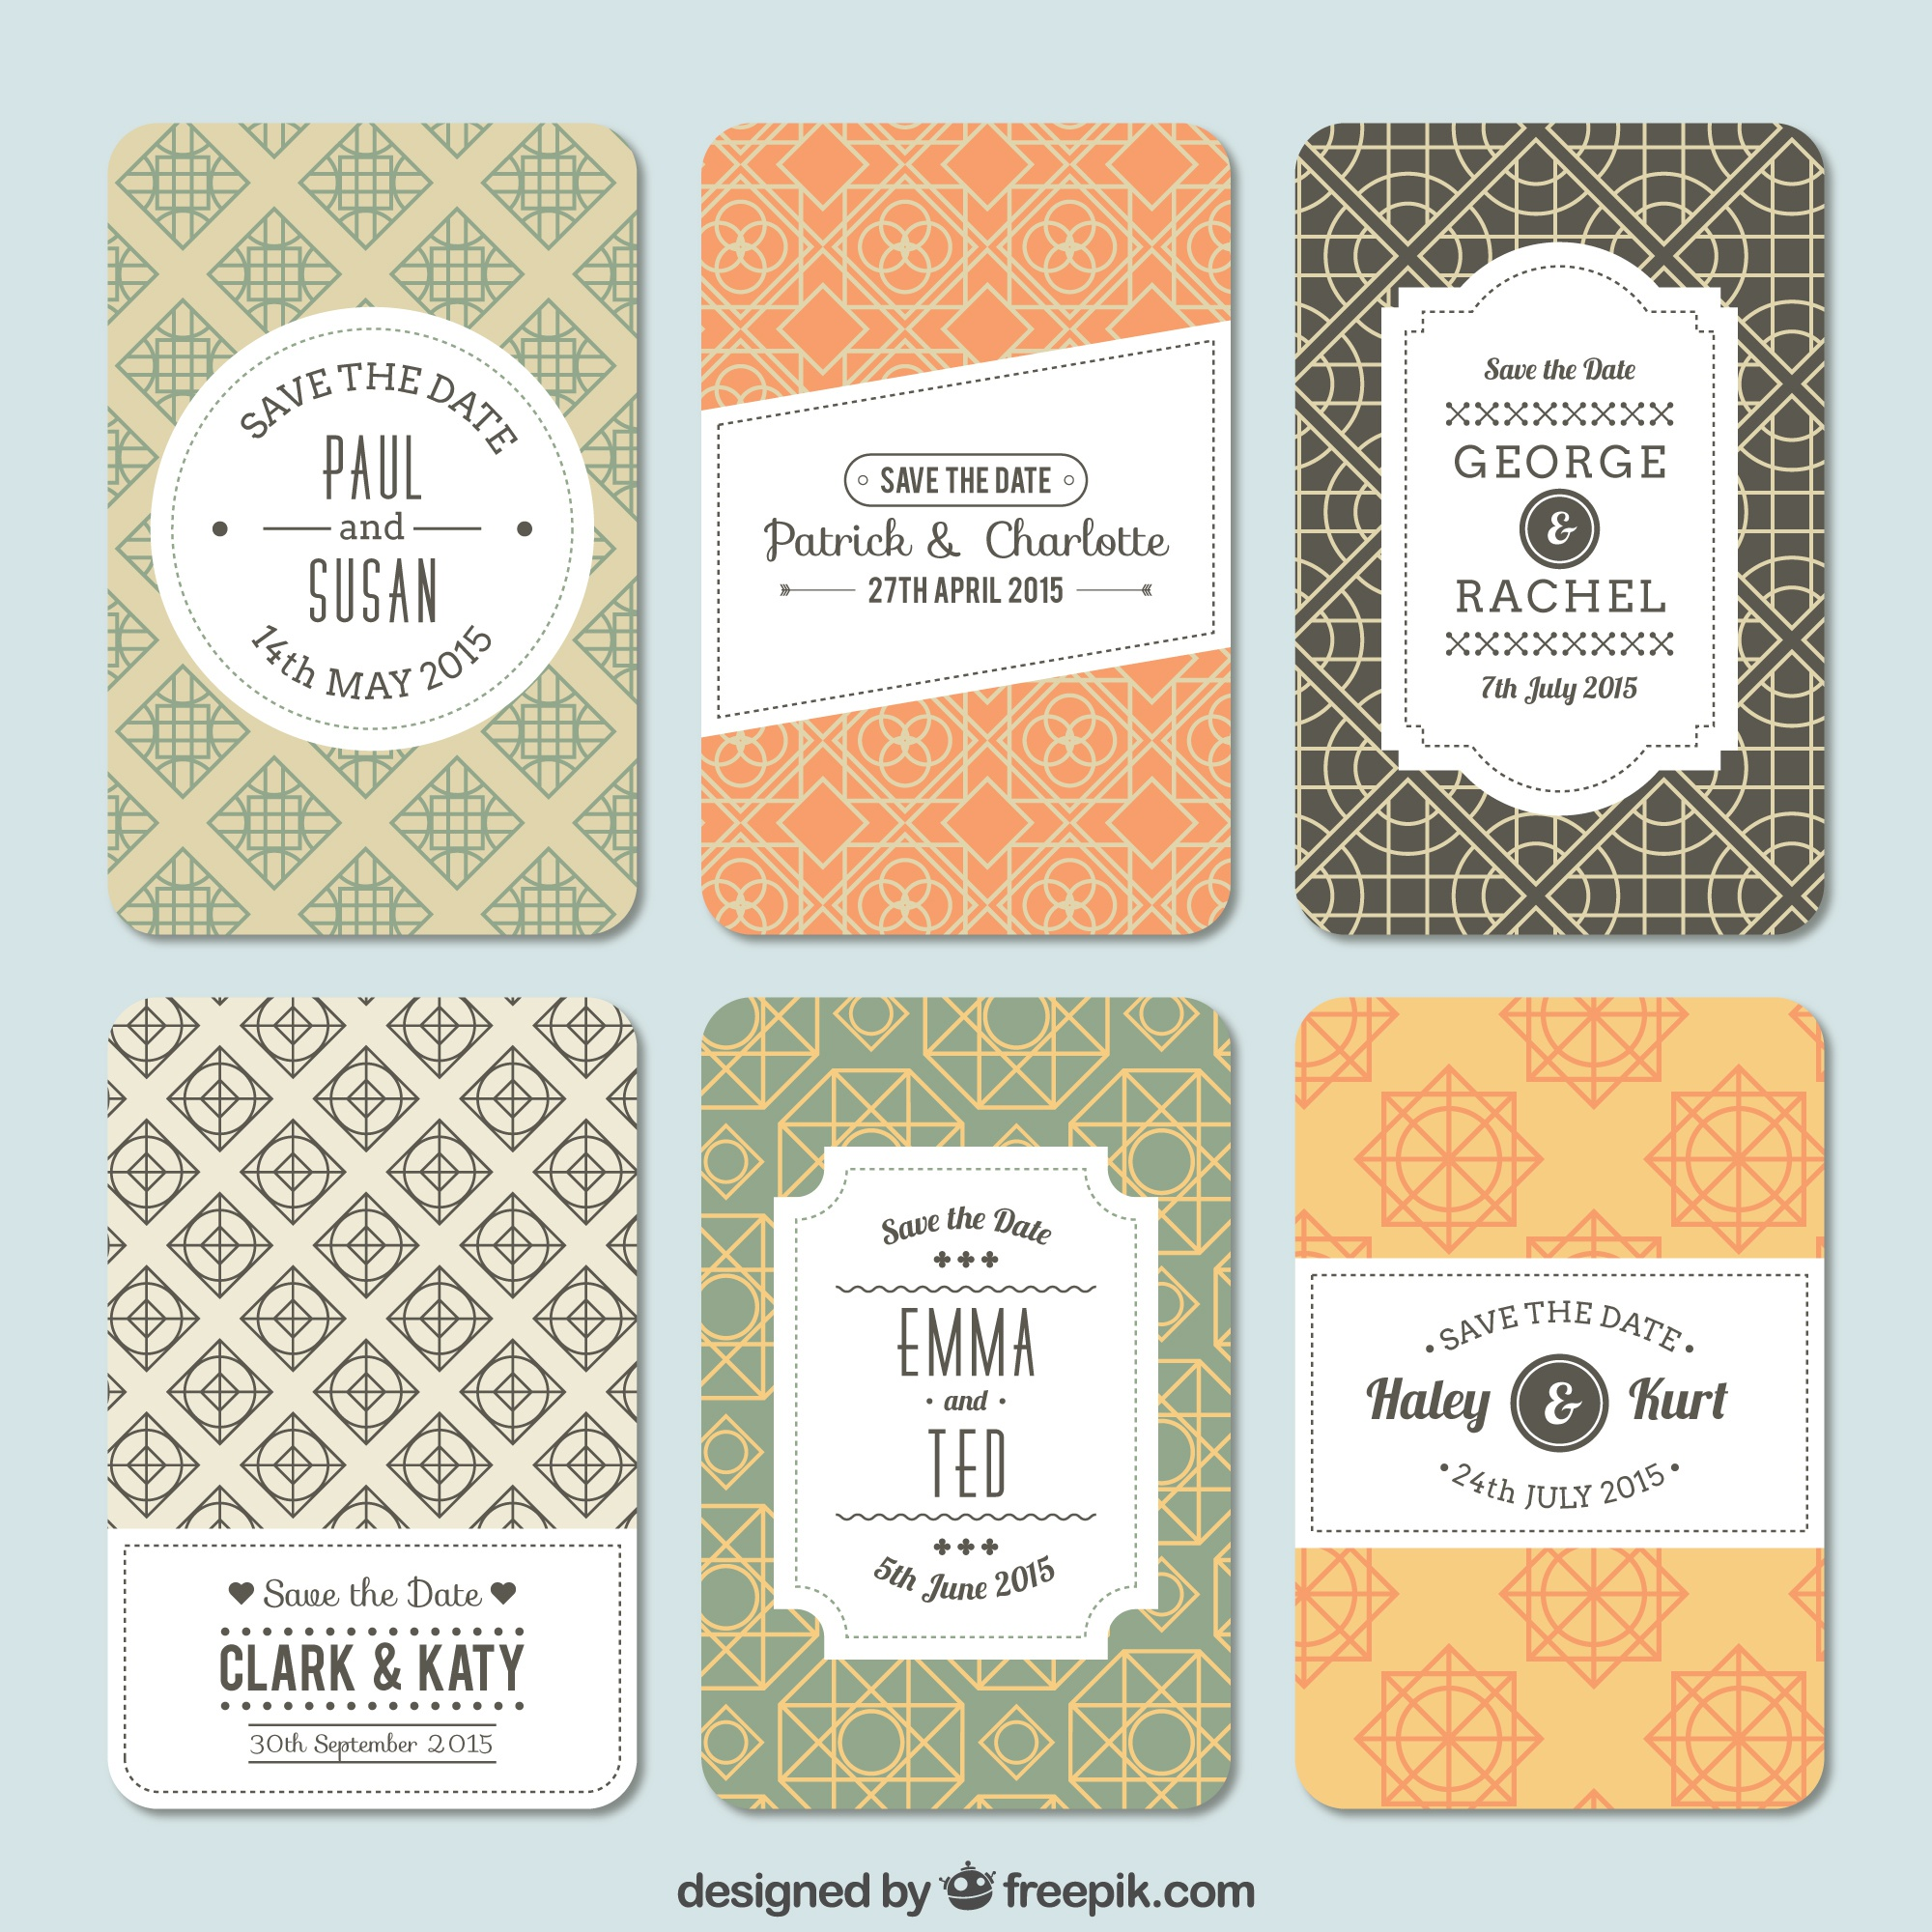 Variety of patterns for wedding invitation